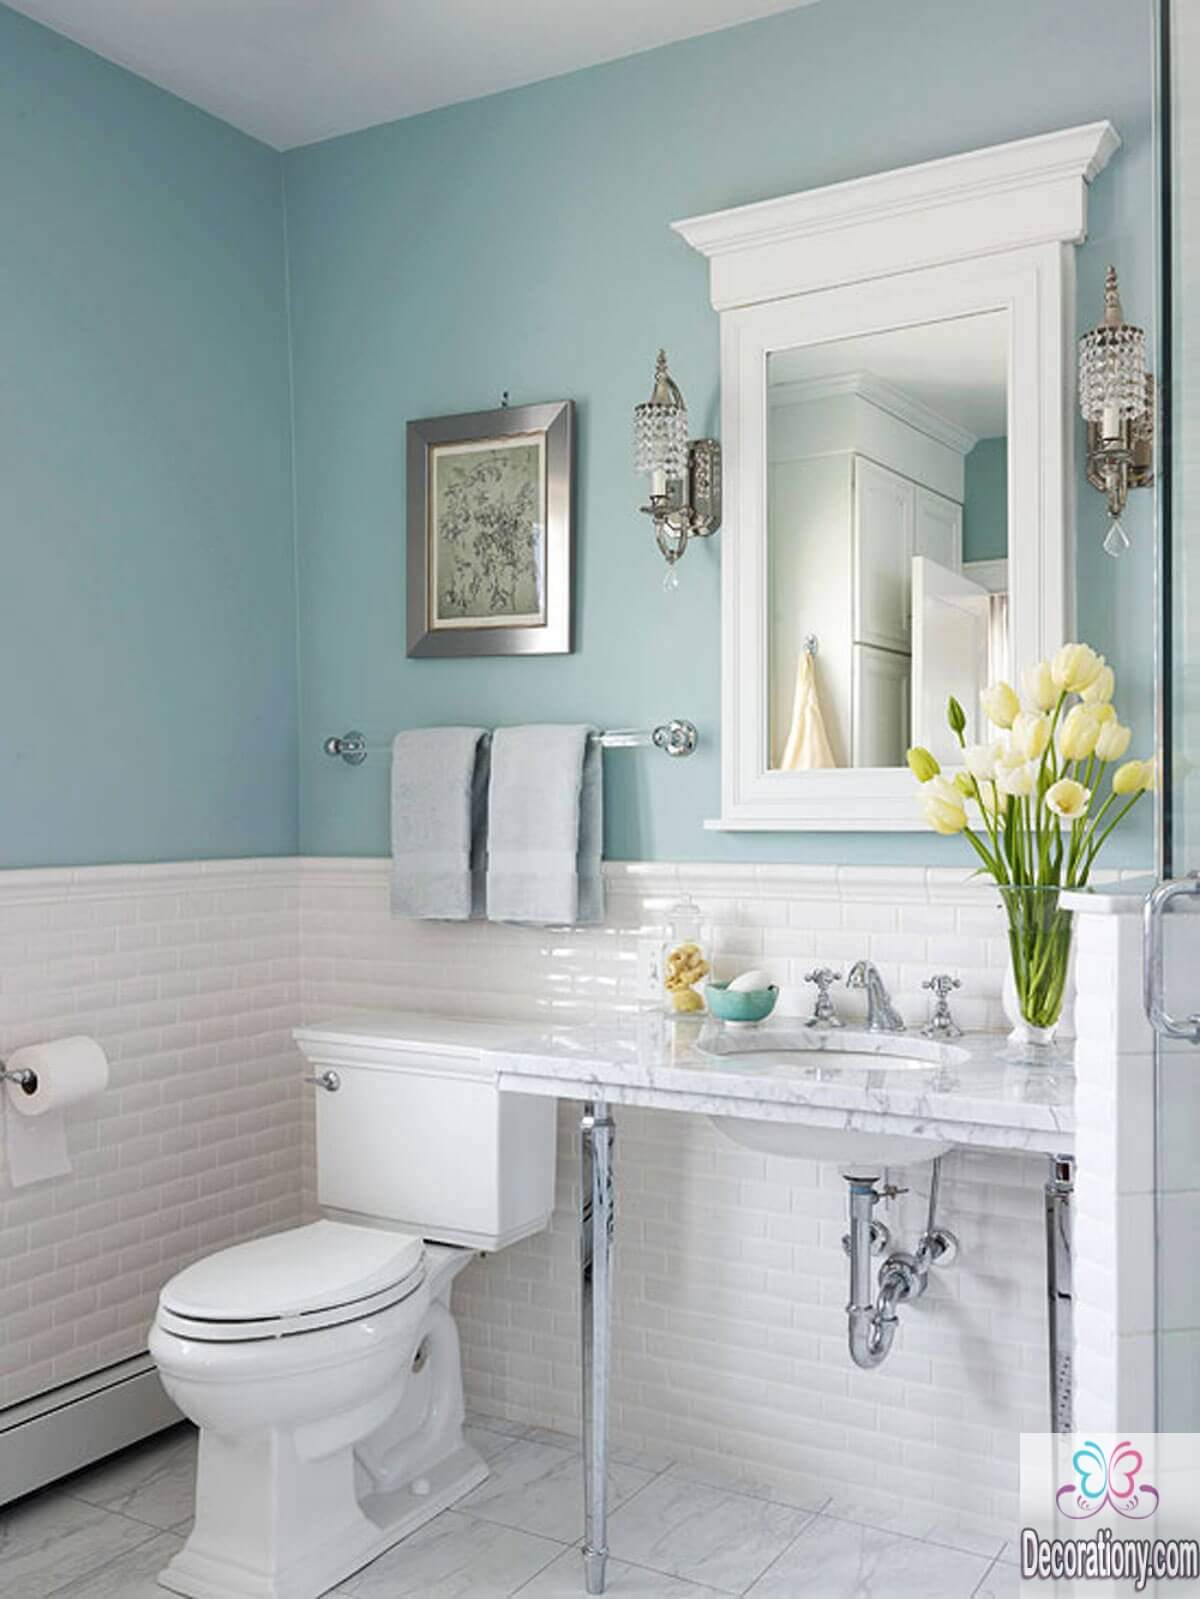 10 affordable colors for small bathrooms decoration y for Small bathroom remodel pictures